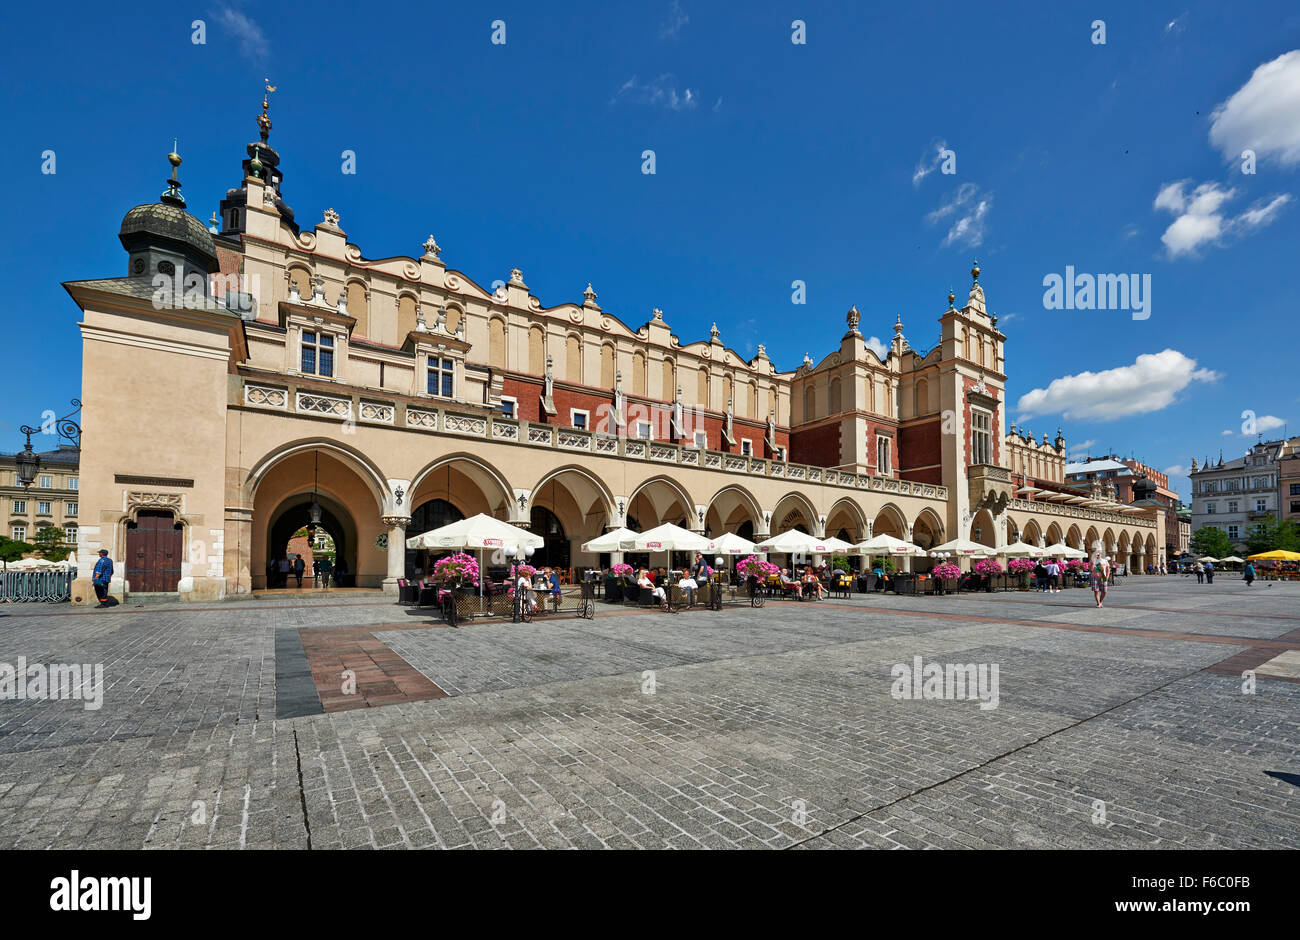 Cloth Hall (Sukiennice), Rynek Glowny, Cracow, Poland Stock Photo